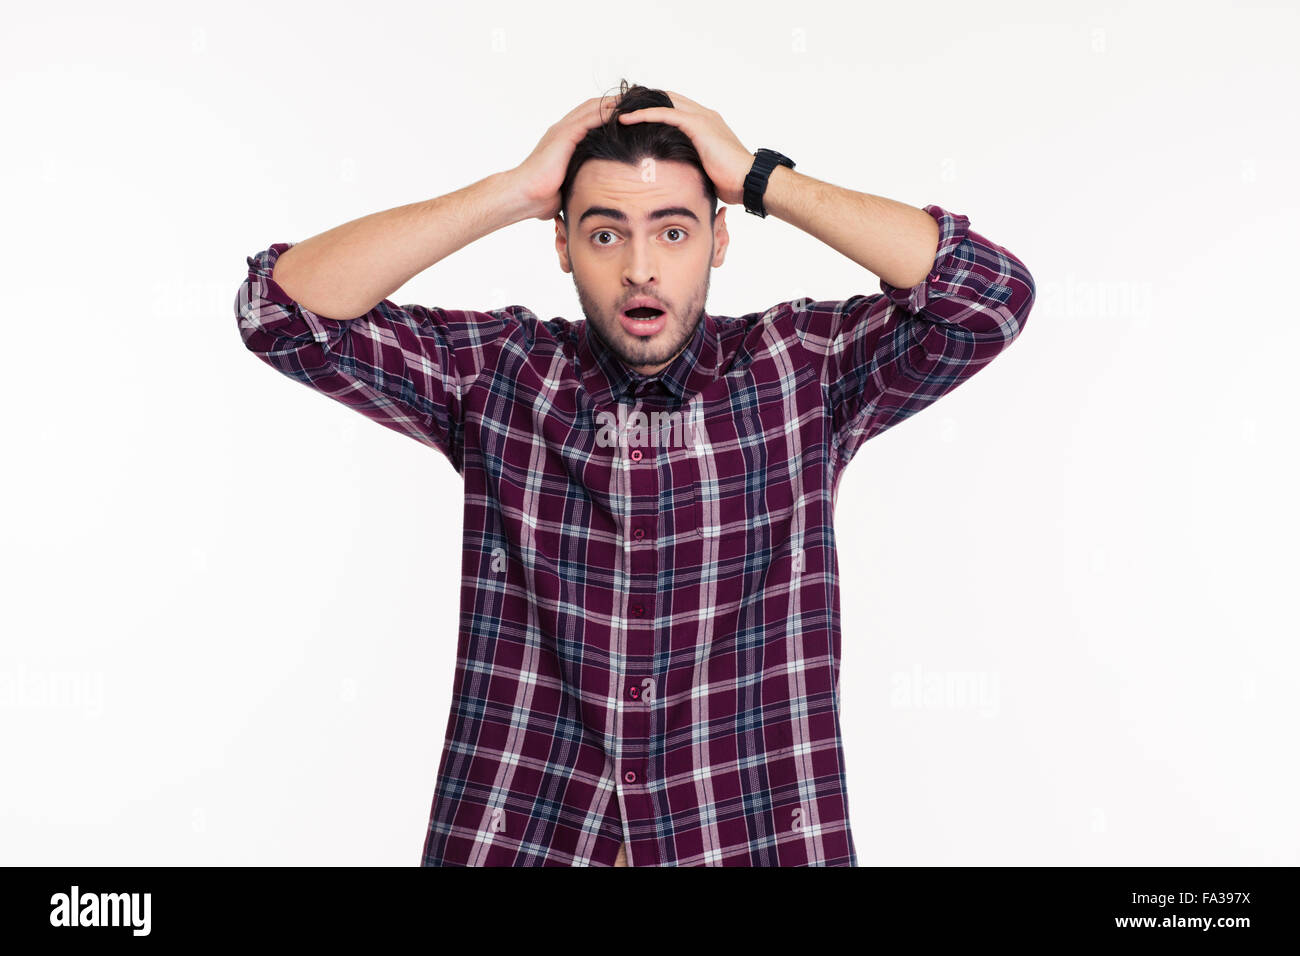 Portrait of a scared man looking at camera isolated on a white background - Stock Image